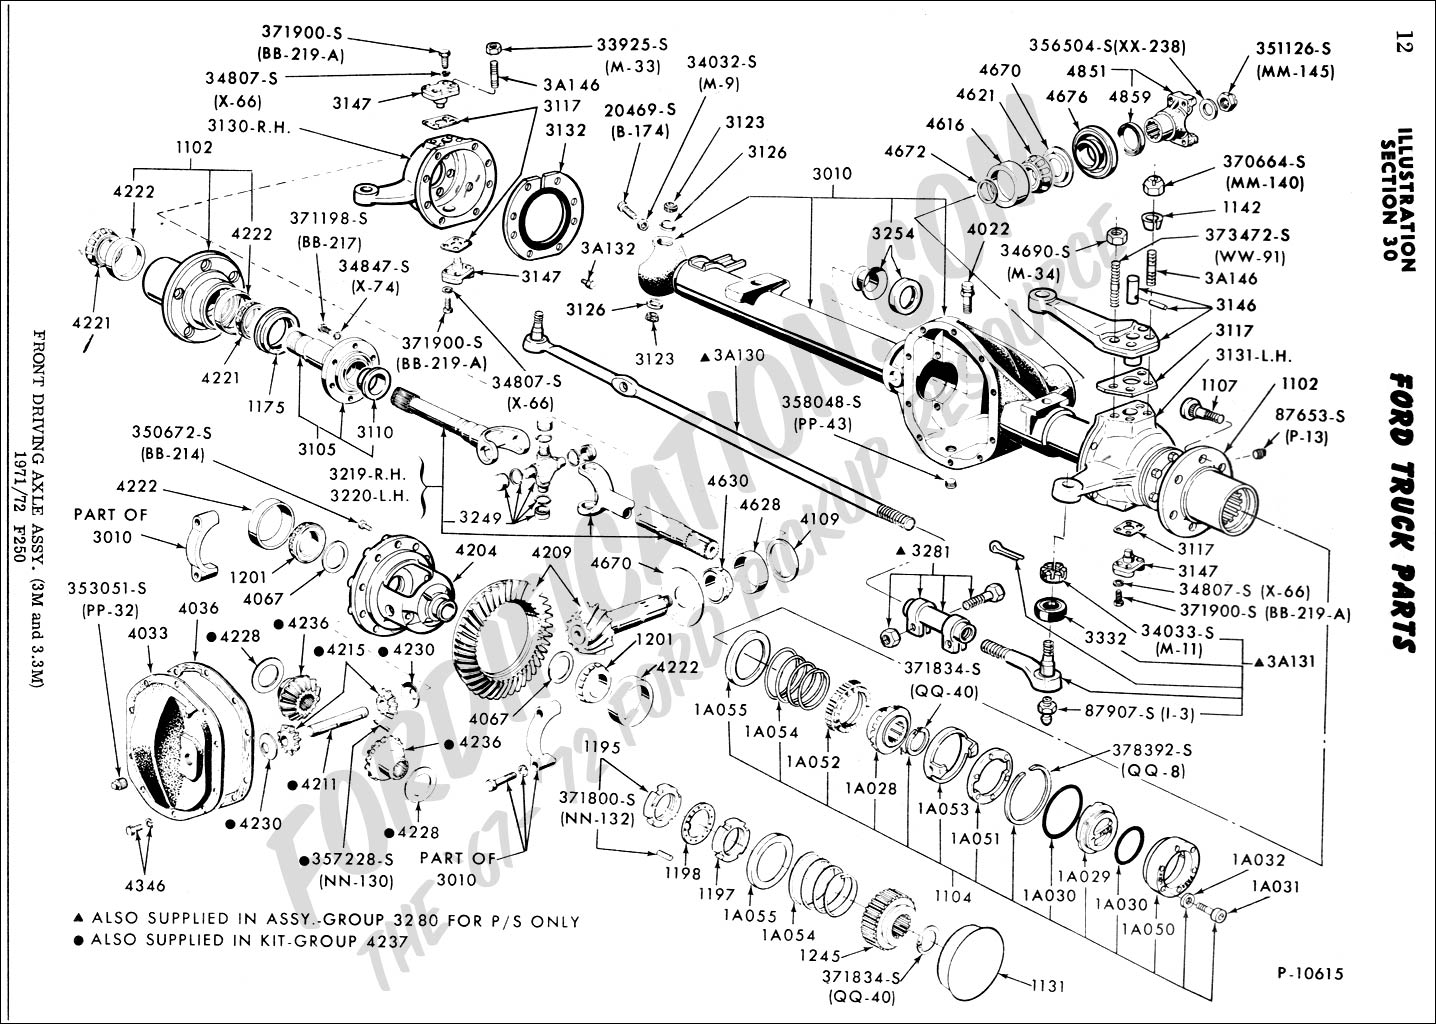 2000 f250 front end diagram html